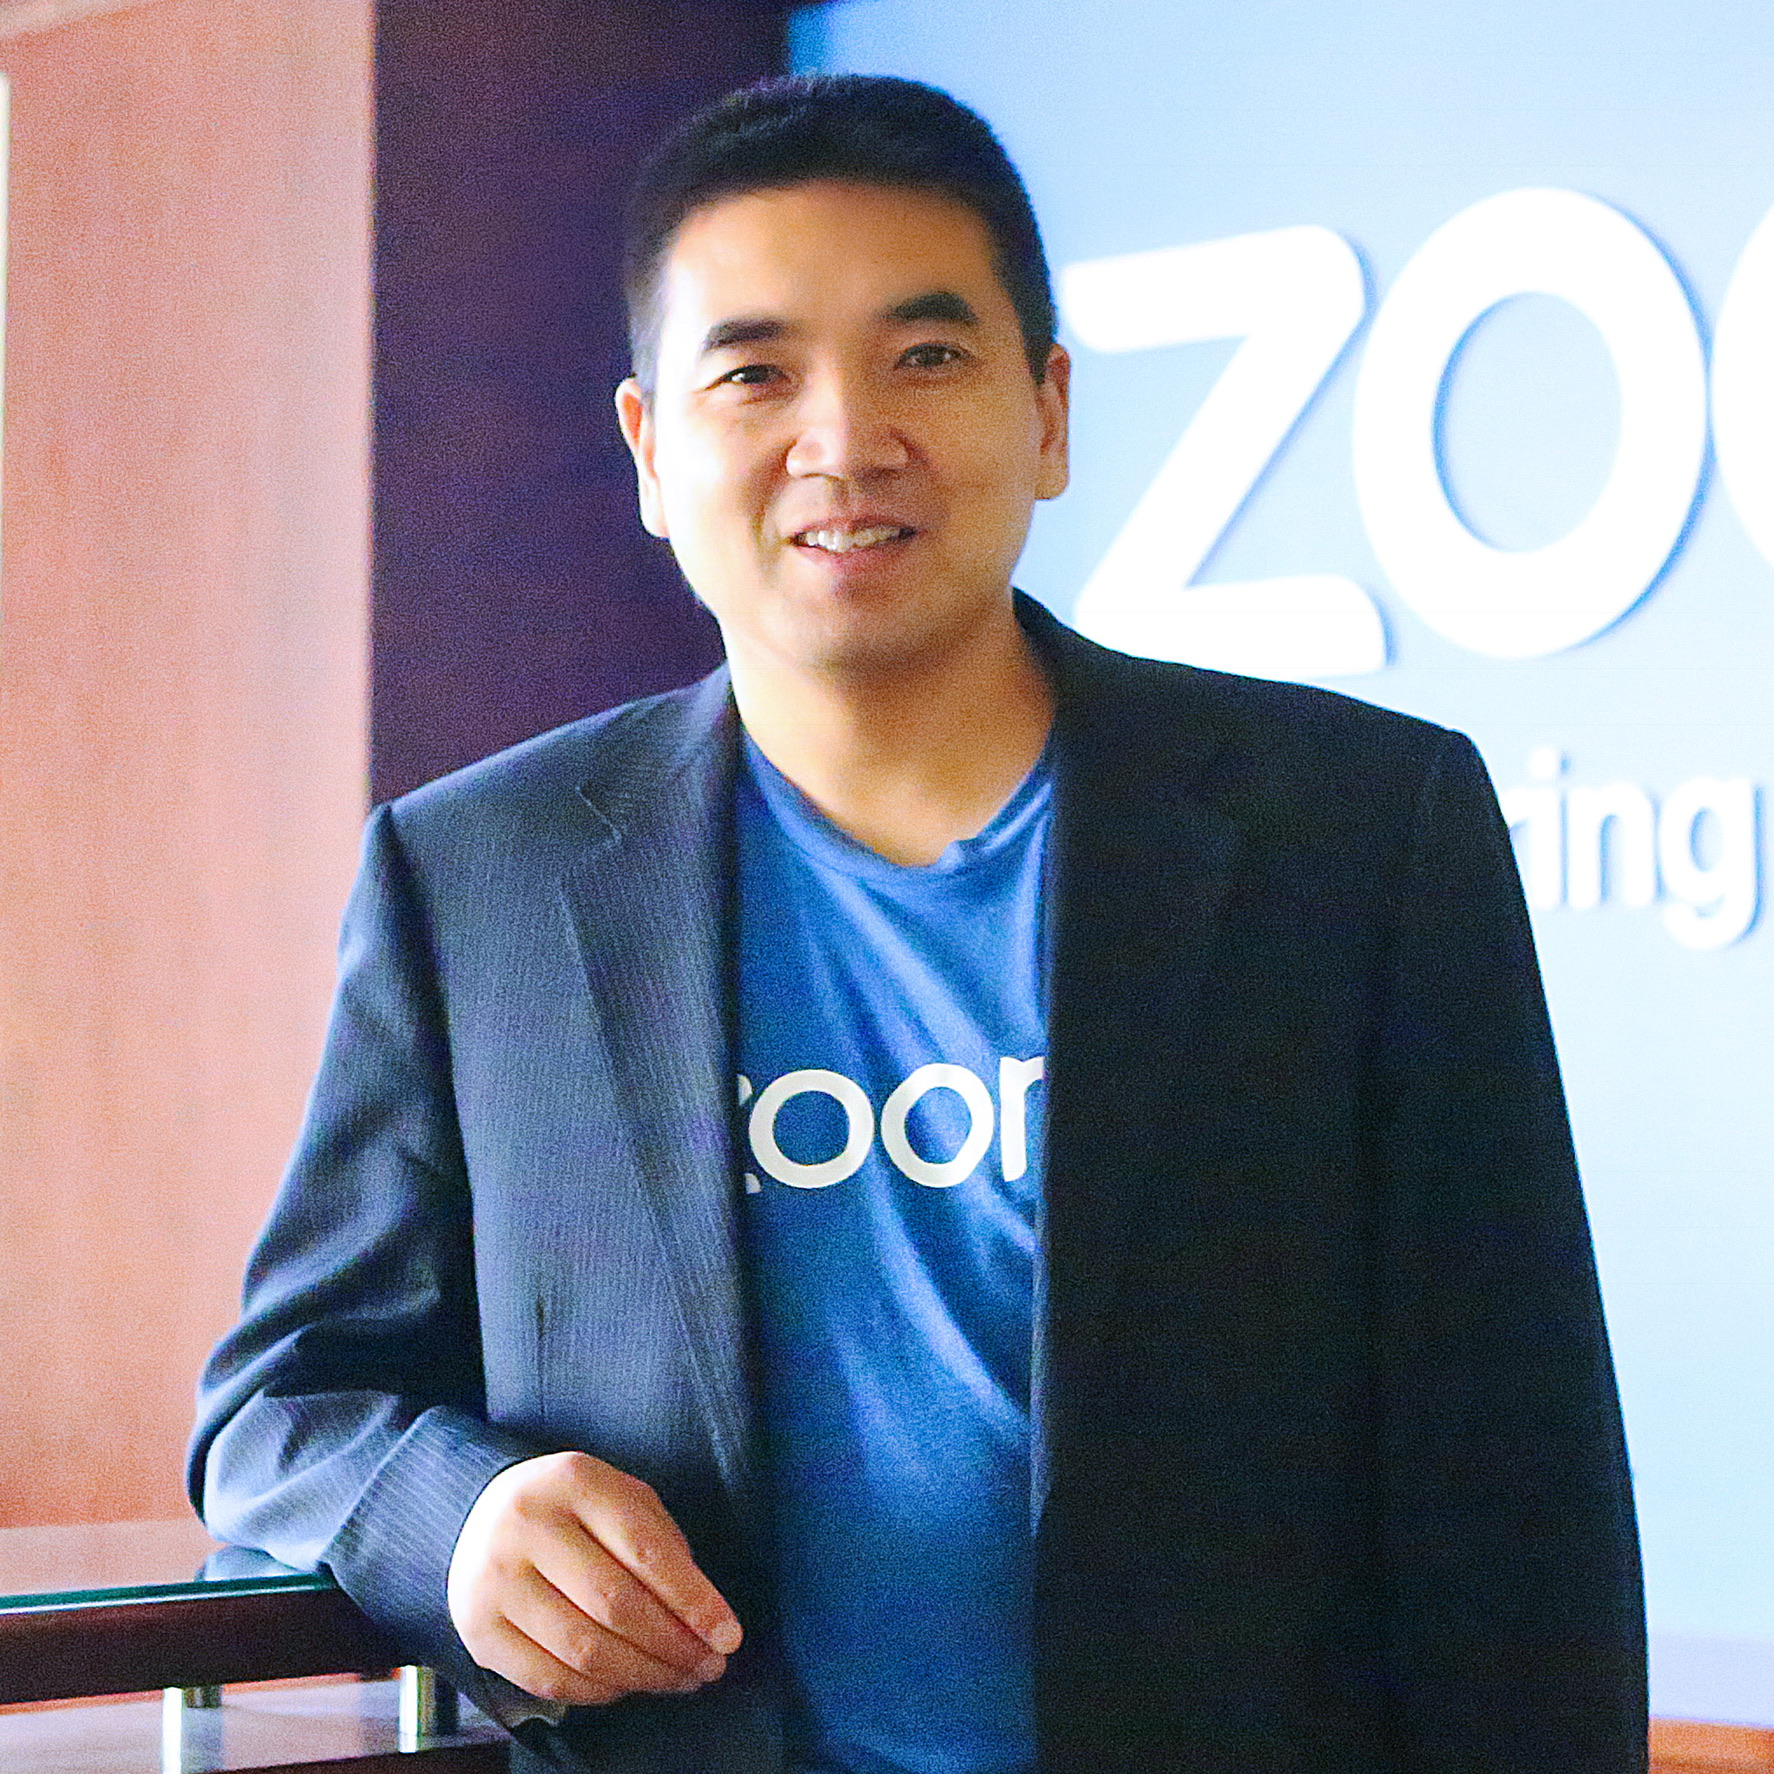 Eric Yuan Builds Cloud Conferencing Company Zoom To Create Satisfied Customers